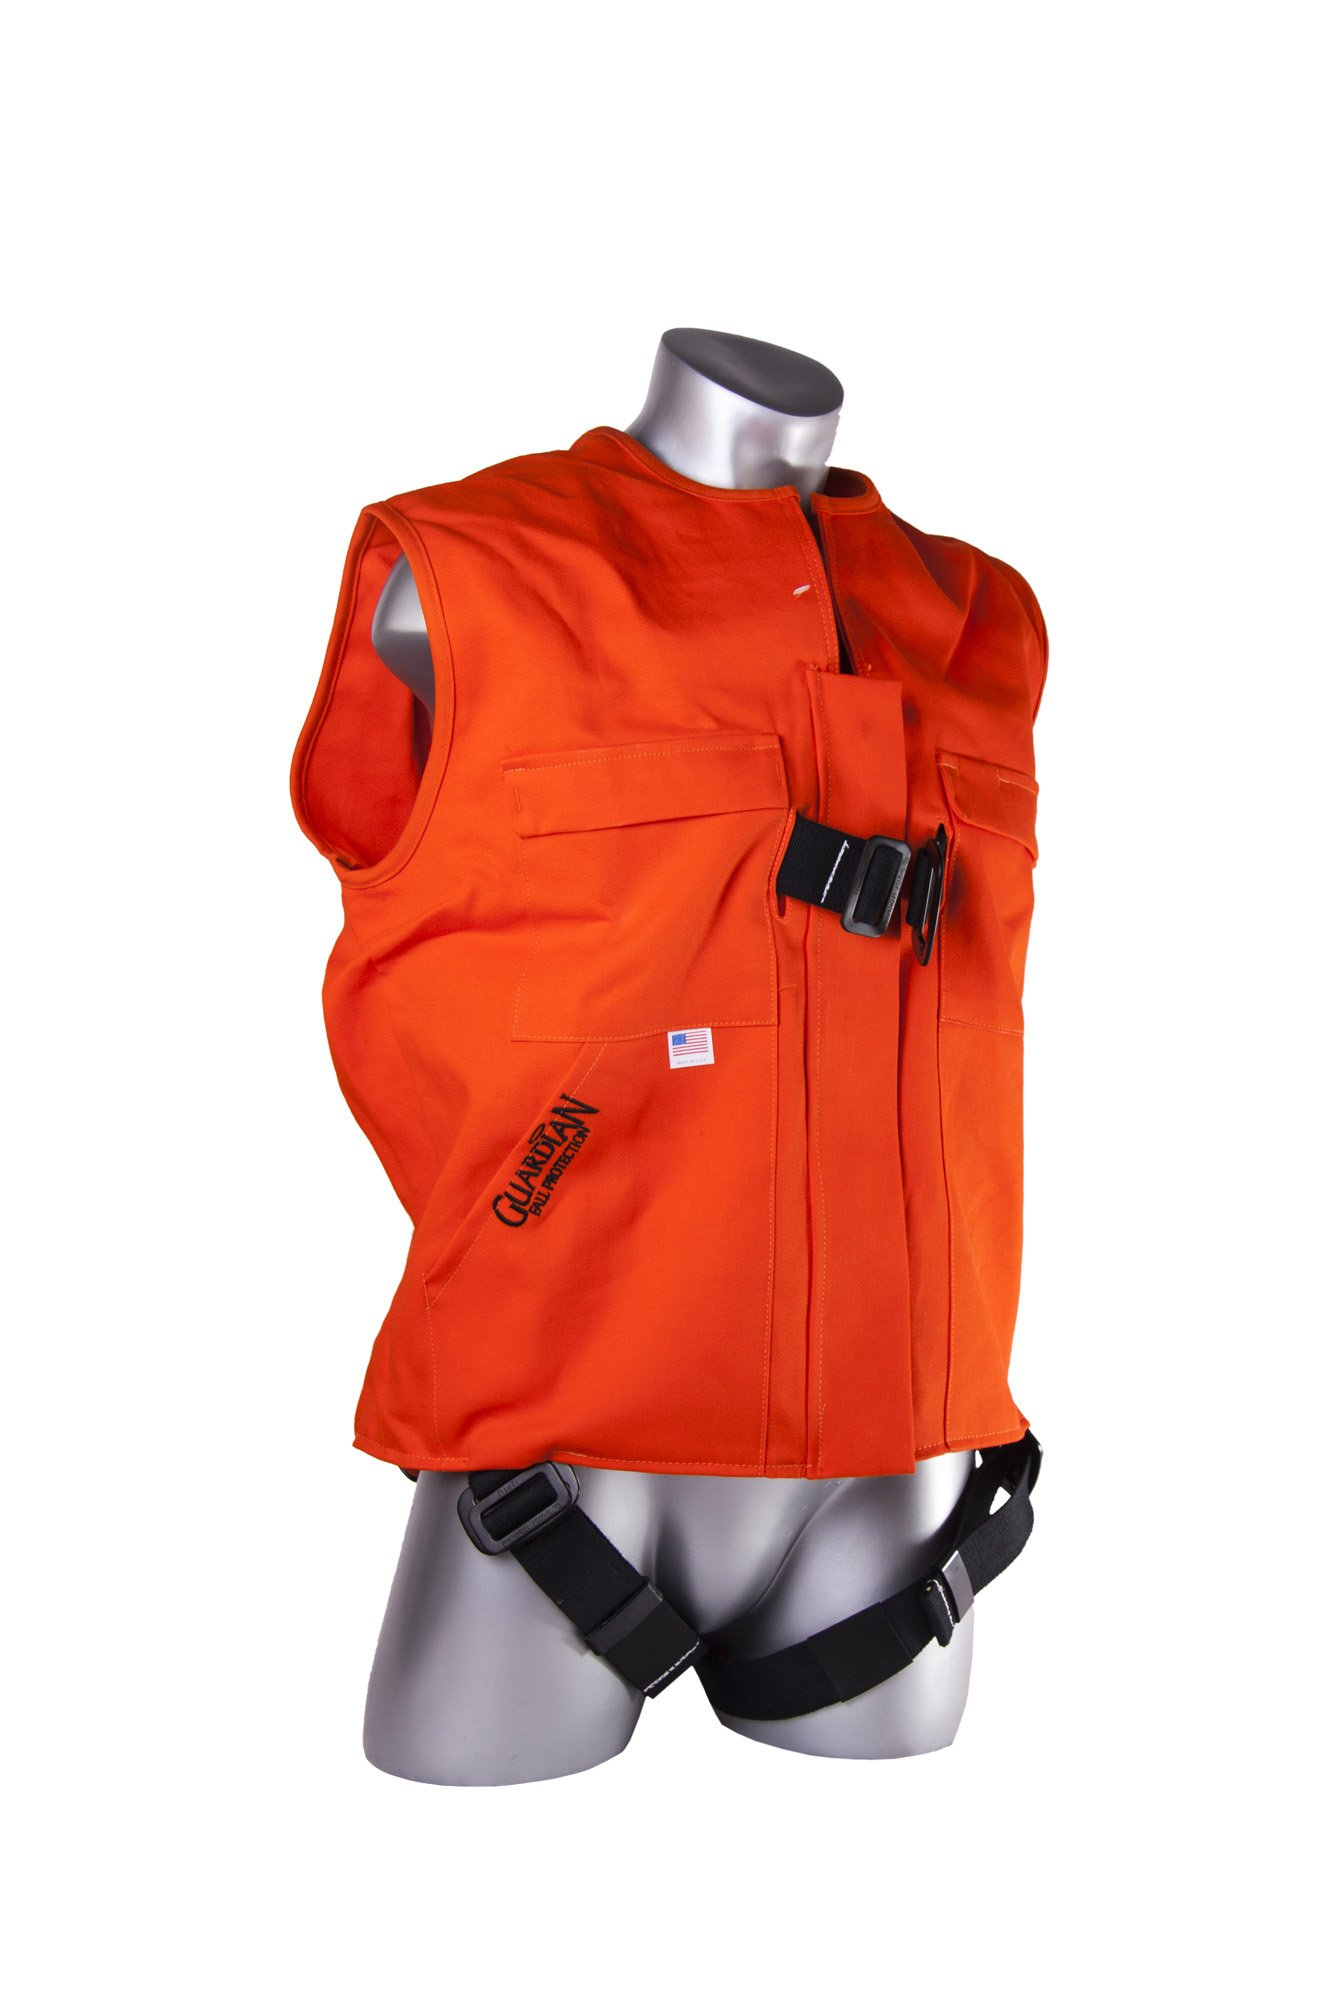 Guardian Fall Protection 02520 Fire Retardant Construction Tux Harness, Large